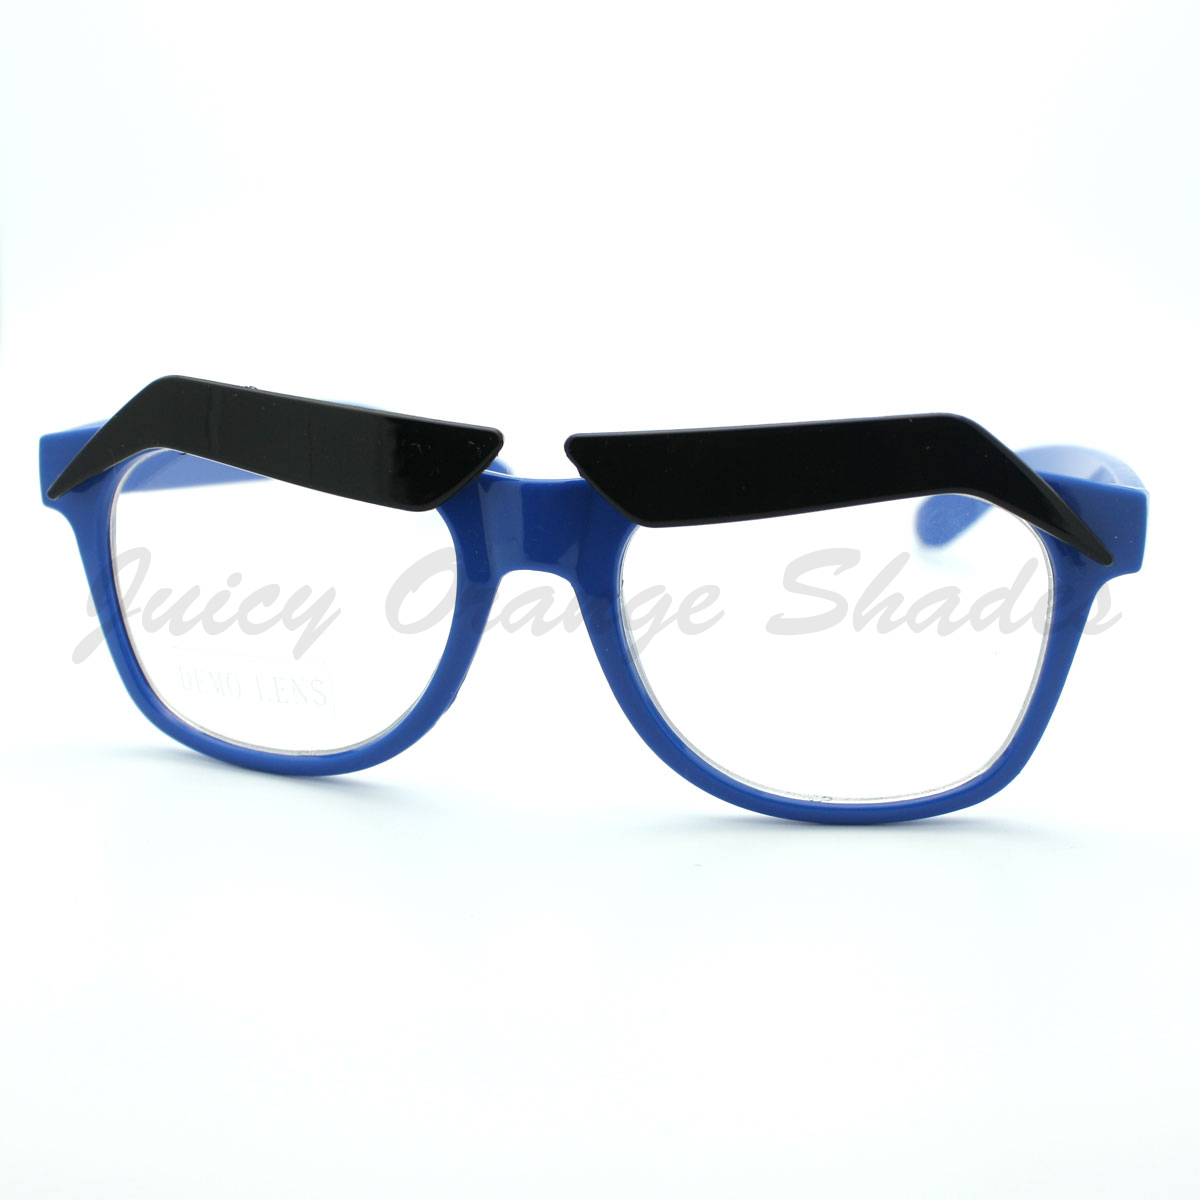 Glasses Frames Eyebrows : Funny Eyebrows Eyeglasses Clear Lens Novelty Cartoon Frame ...